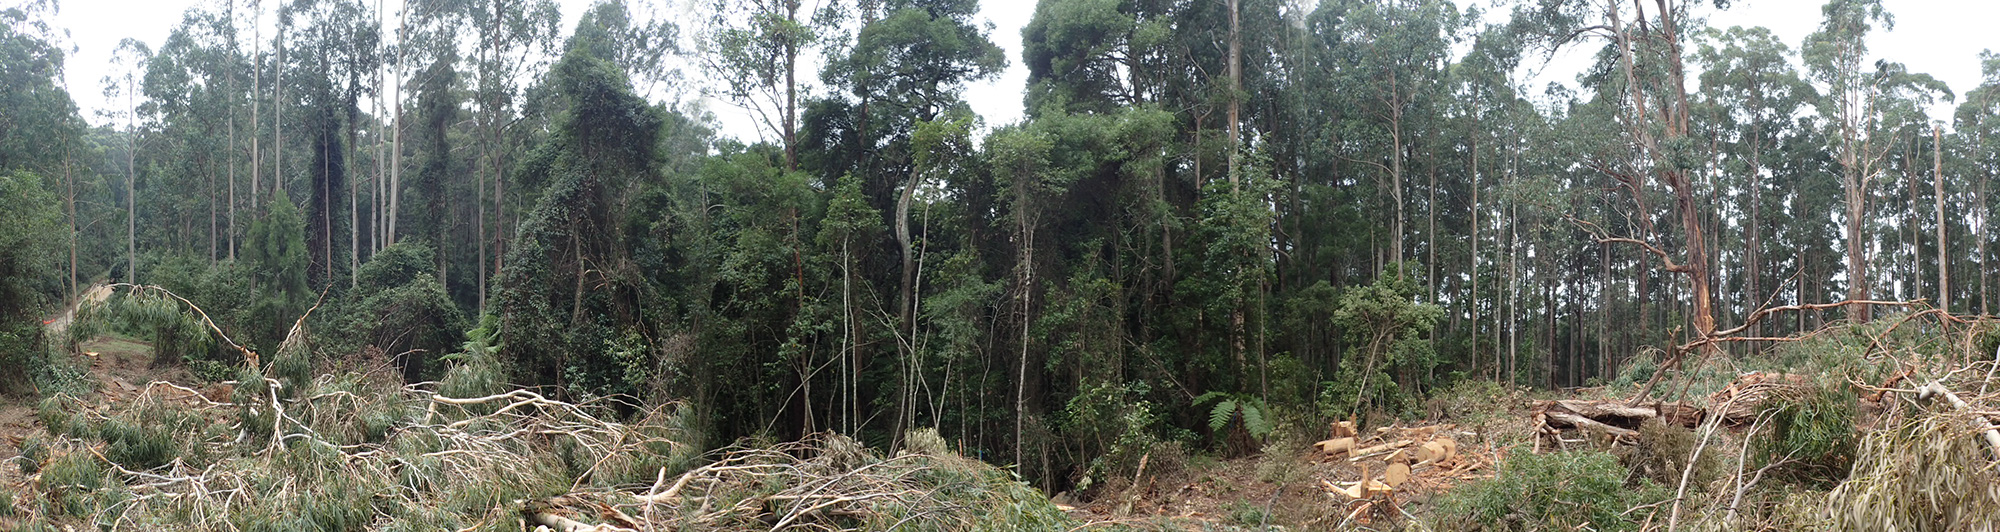 160315_-_Overview_of_Logging_within_min._Rainforest_Buffer_Pugaree_Rd_-_832-502-0017.jpg